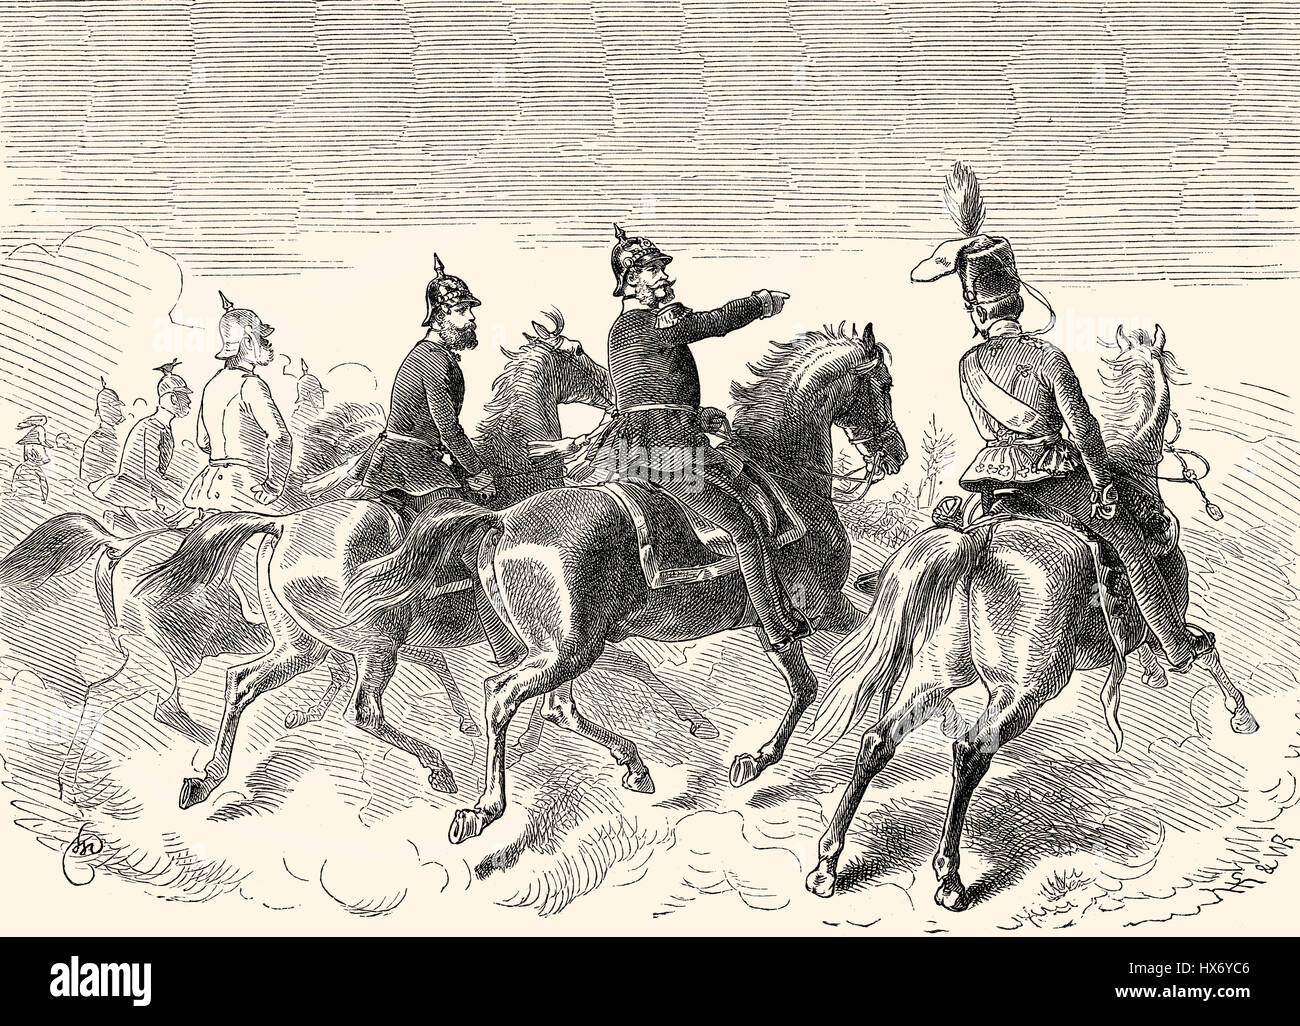 William I  at the Battle of Dybbøl, a battle of the Second Schleswig War, 1864 - Stock Image